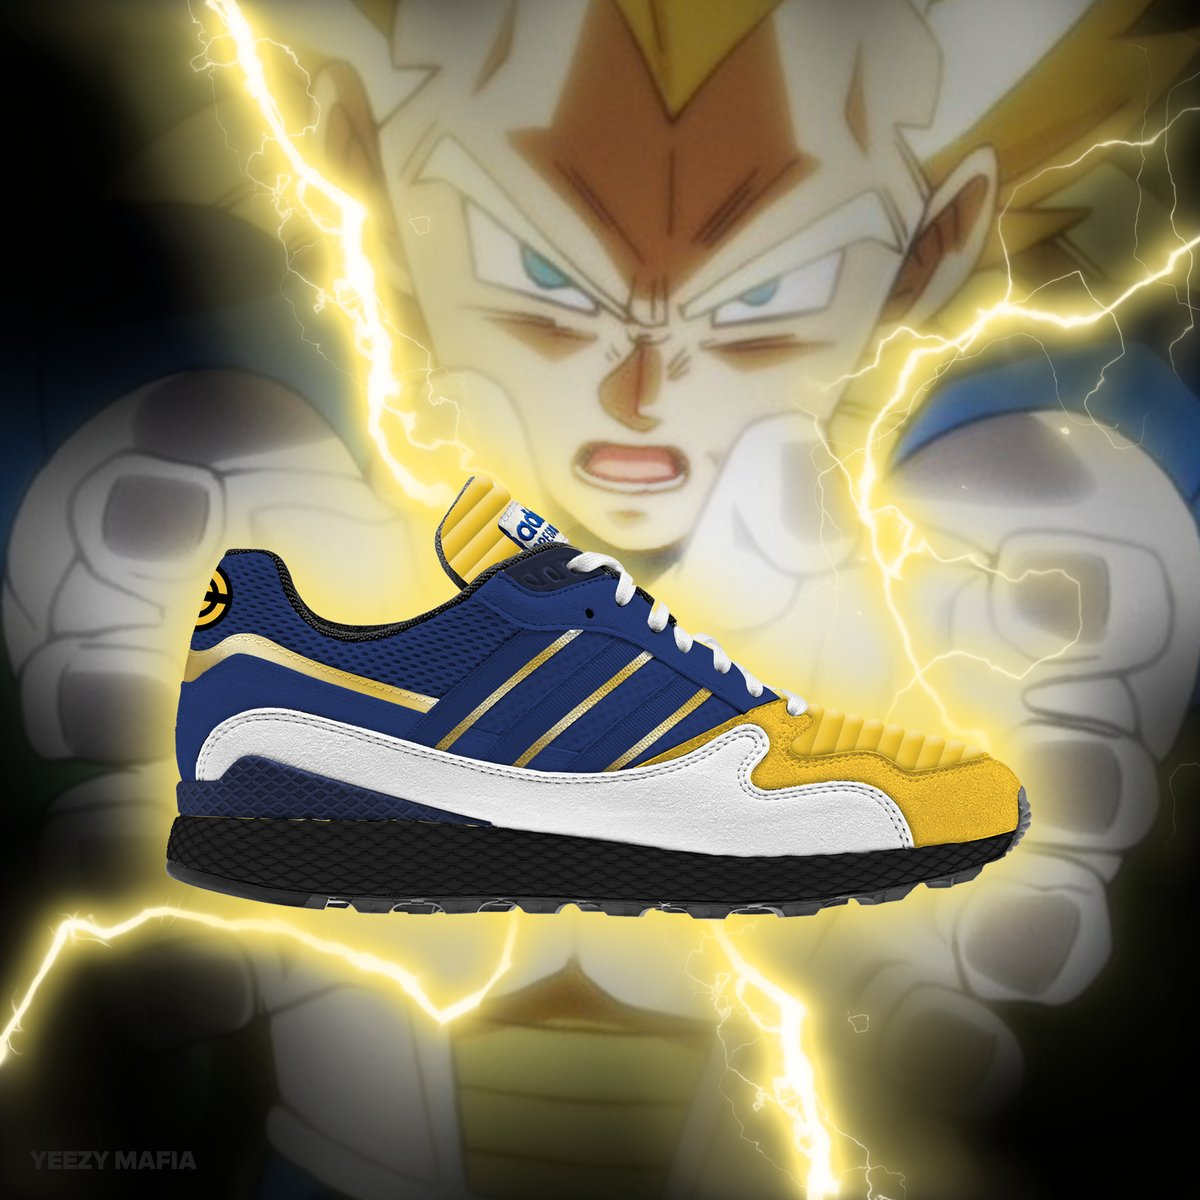 Dragon Ball x Adidas